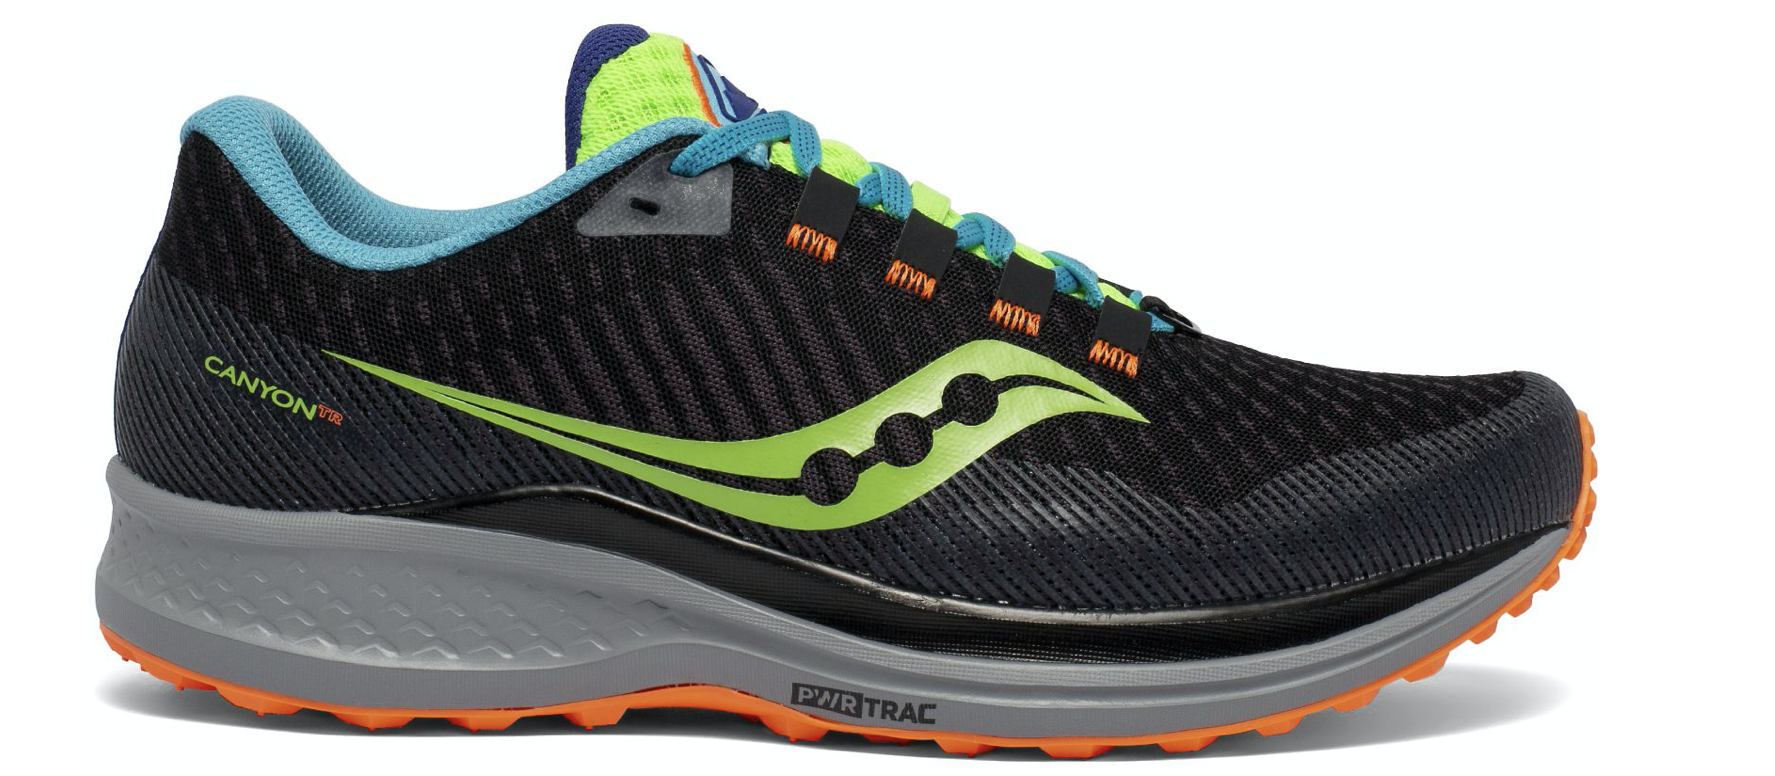 Saucony Canyon TR Future Trail-Running Shoe